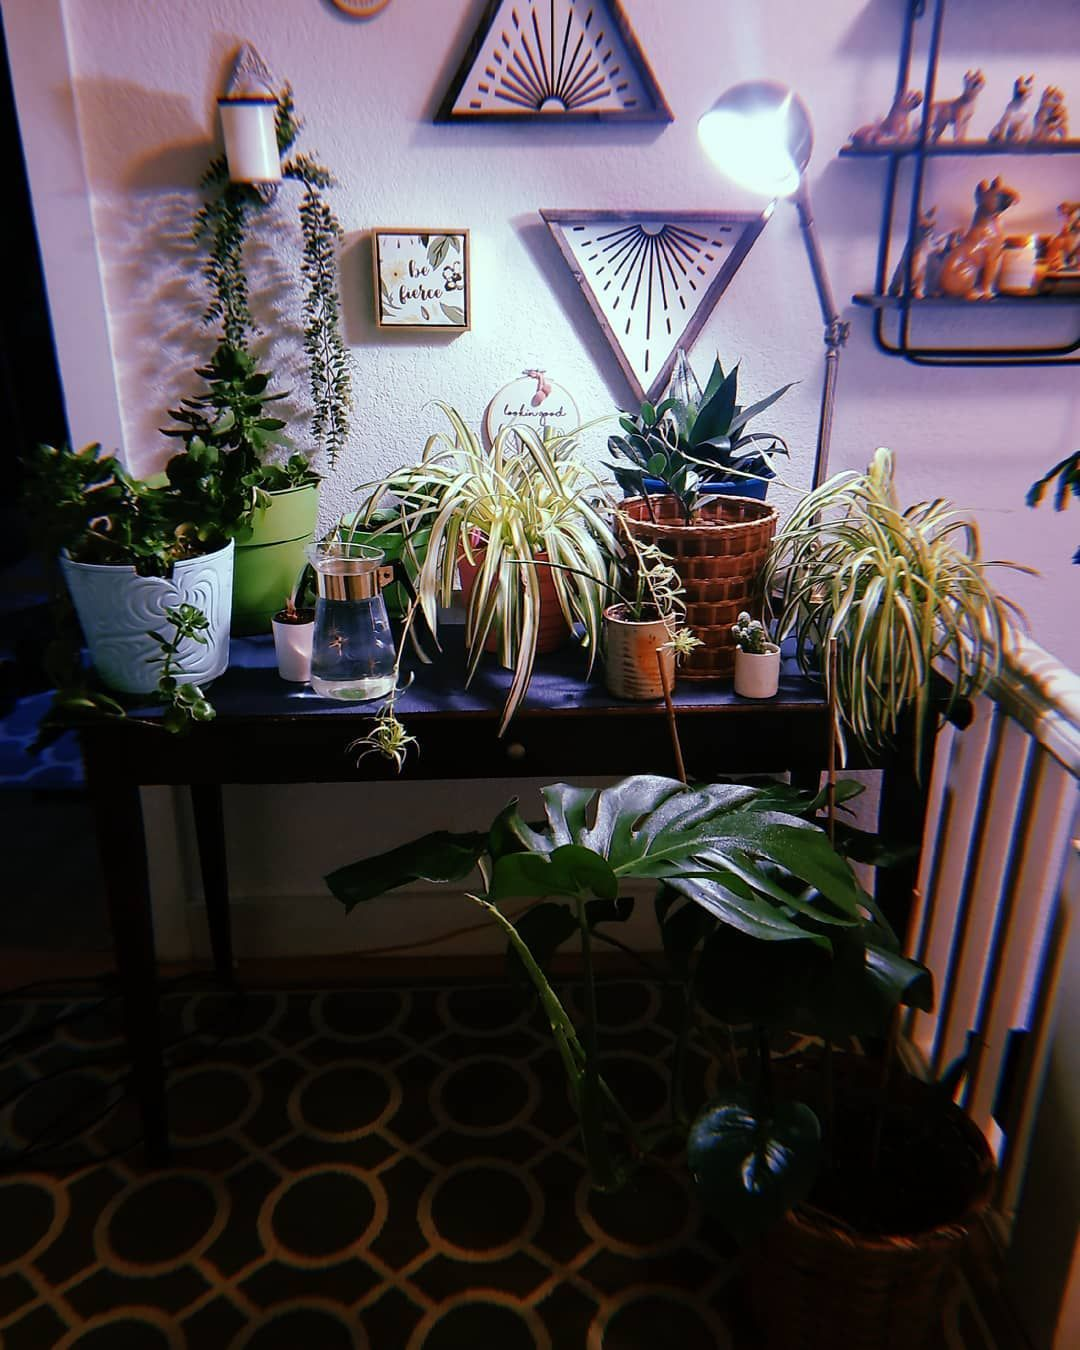 How To Choose The Best Light For Growing Plants Indoors 2020 Edition In 2020 Growing Plants Indoors Growing Plants Indoor Plants